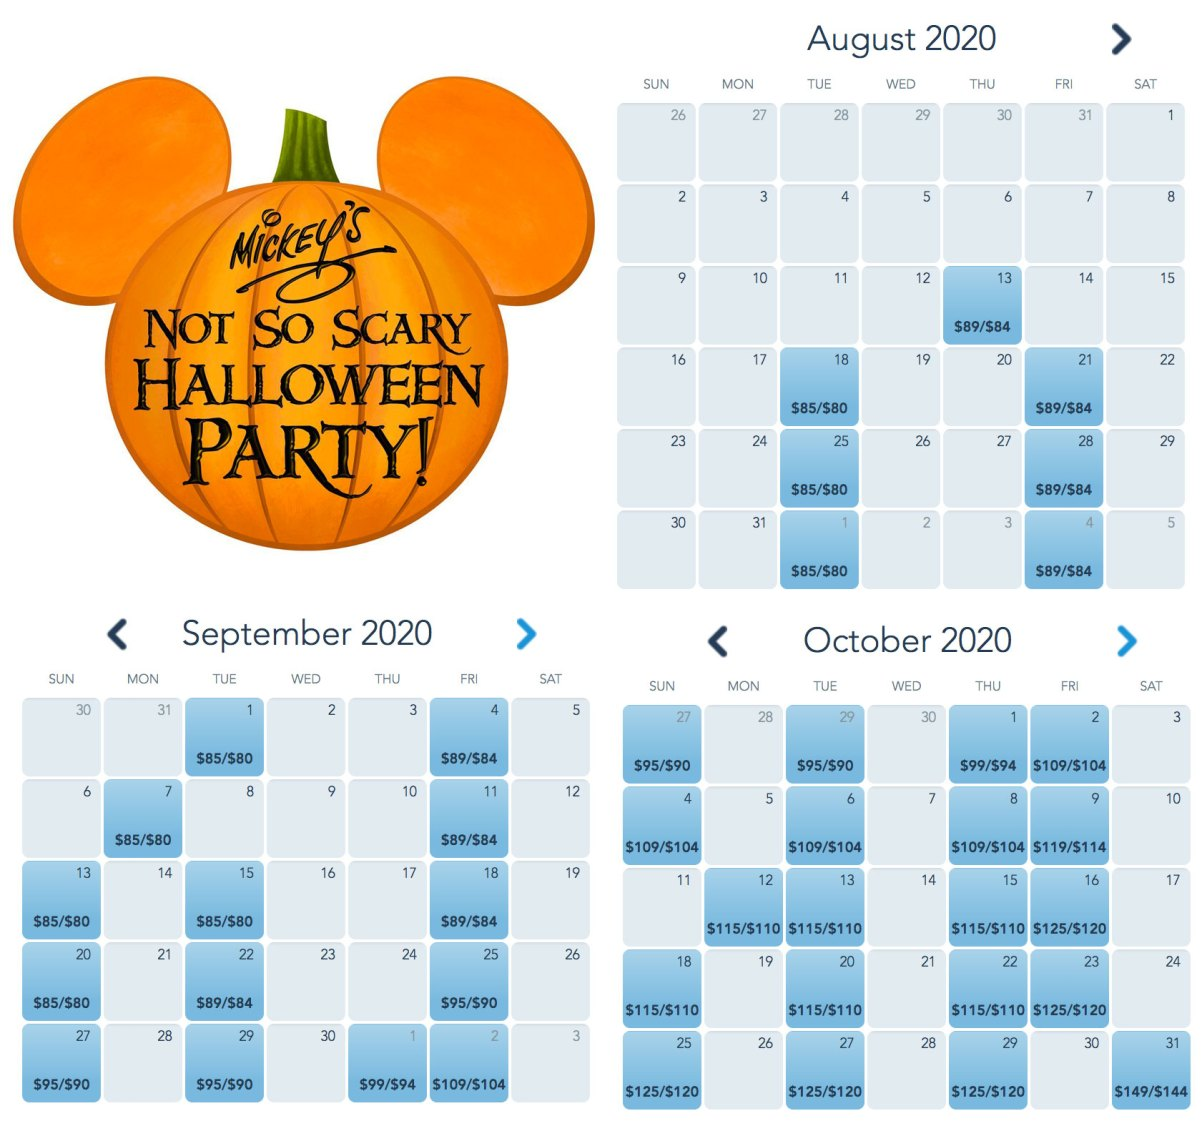 Halloween Octtober 31 2020 Disneyland Tickets Now on Sale for 2020 Mickey's Not So Scary Halloween Party